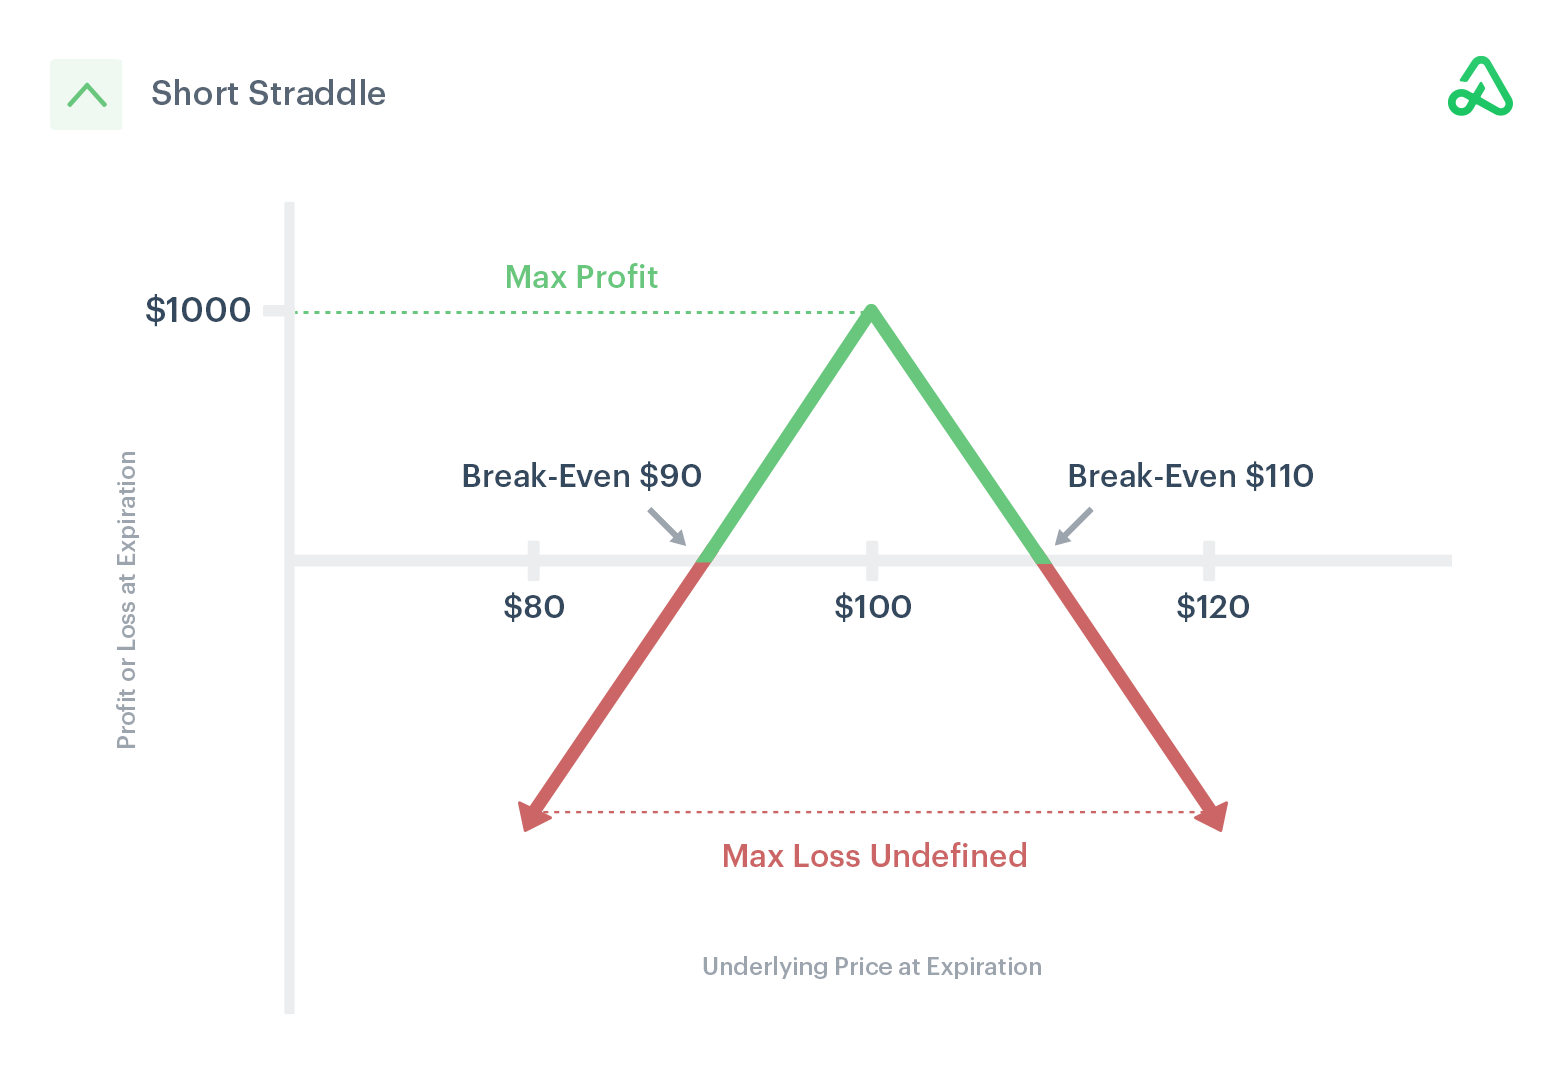 Image of short straddle payoff diagram showing max profit, max loss, and break-even points